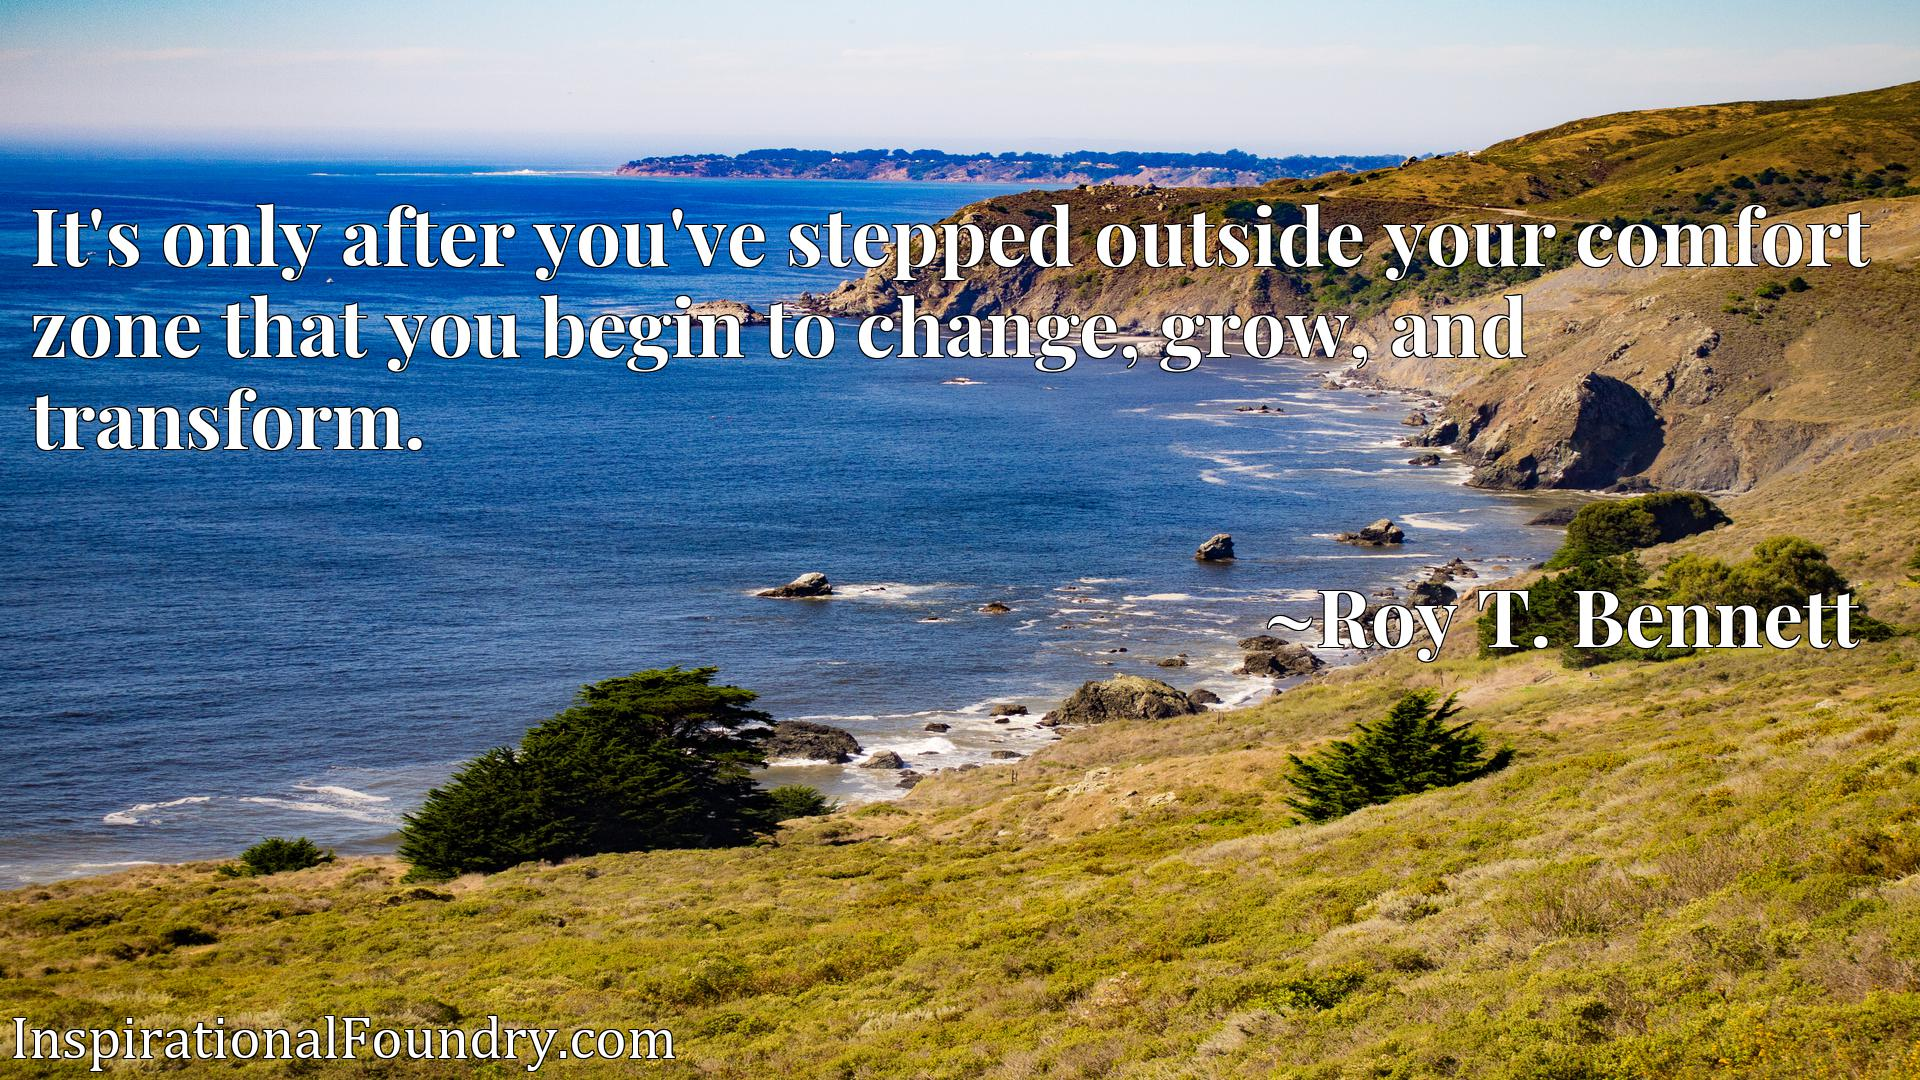 It's only after you've stepped outside your comfort zone that you begin to change, grow, and transform.